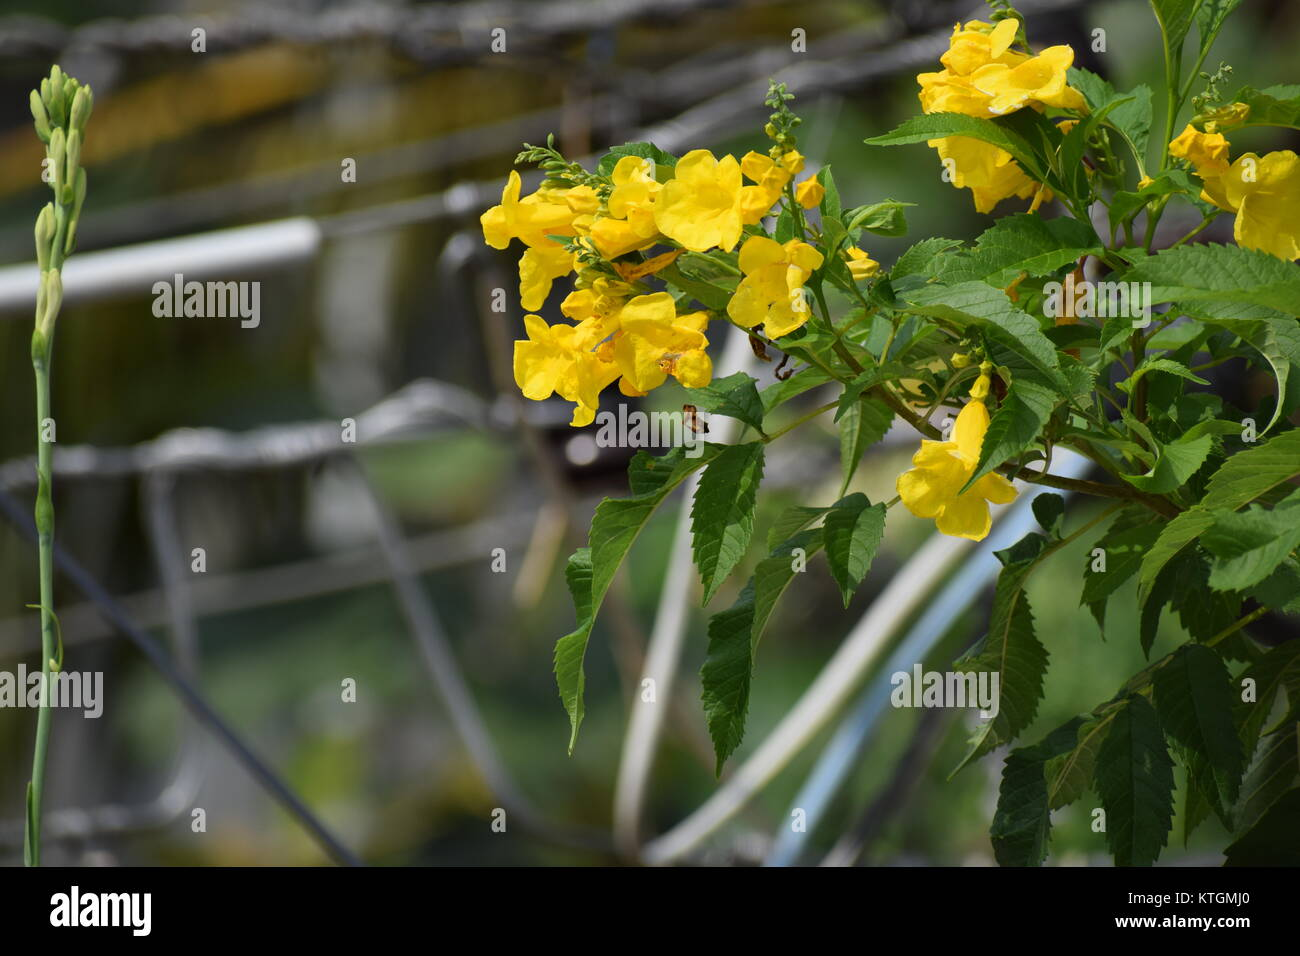 good photographs and stock images 4k hd - Stock Image